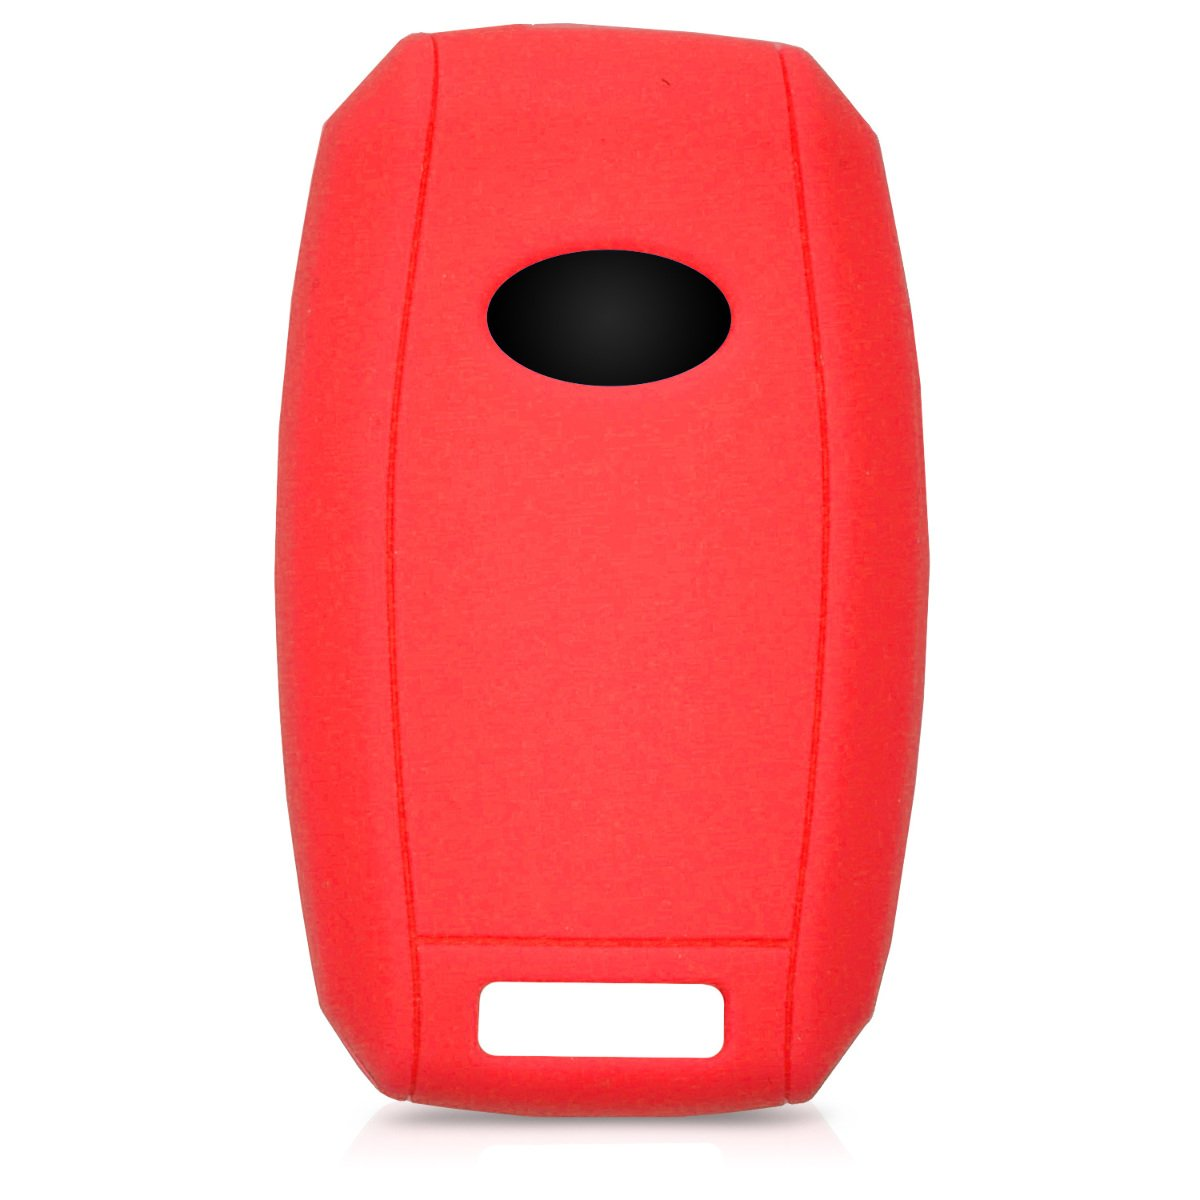 Red//Black Silicone Protective Key Fob Cover for Kia 3-4 Button Car Key kwmobile Car Key Cover for Kia